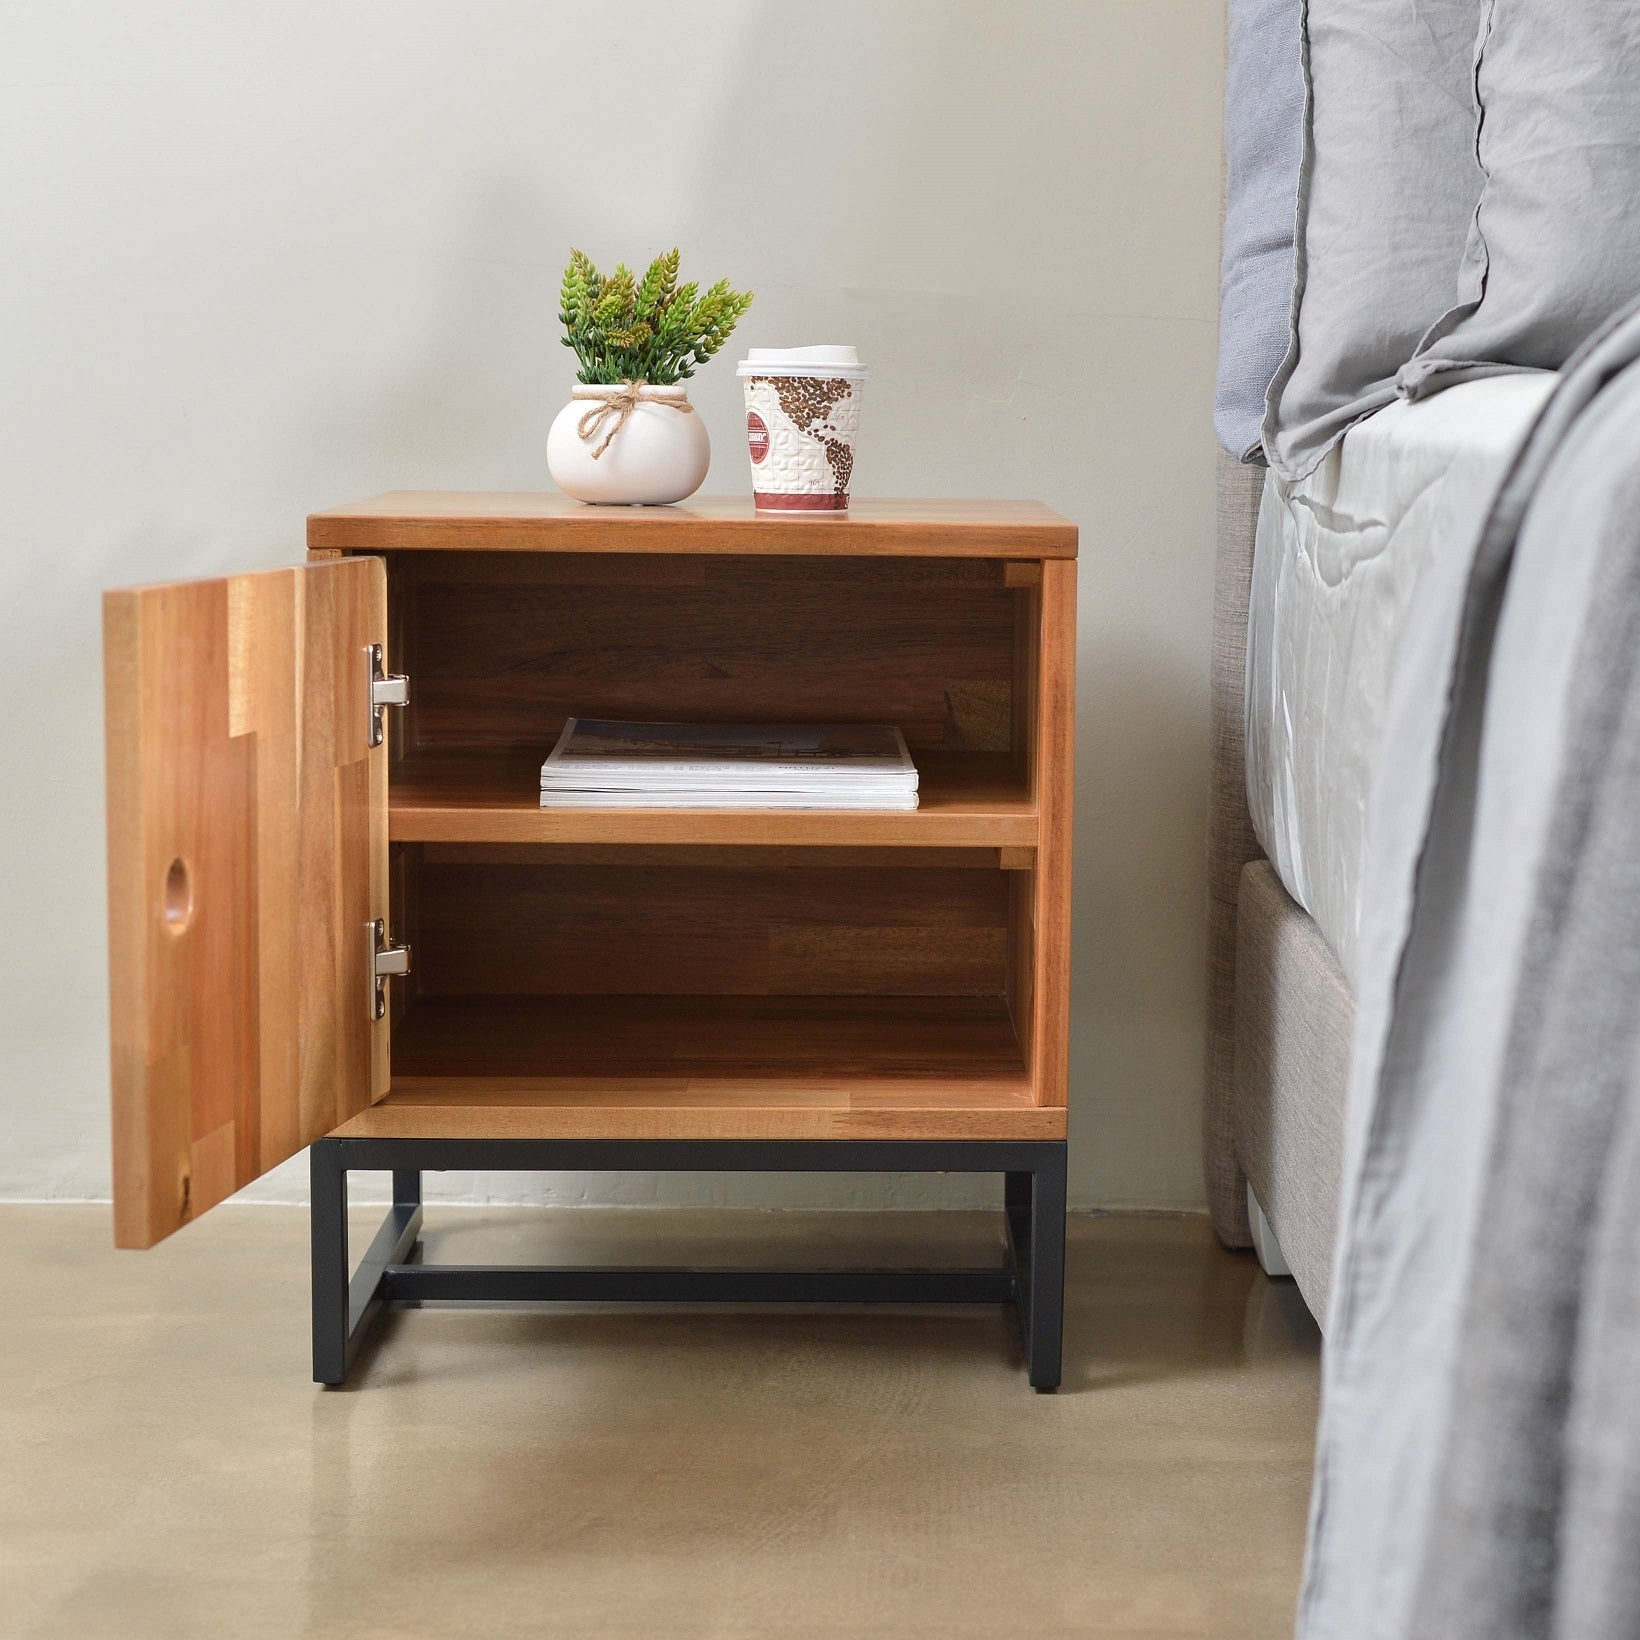 Casa acacia wood bedside table with metal frame in natural